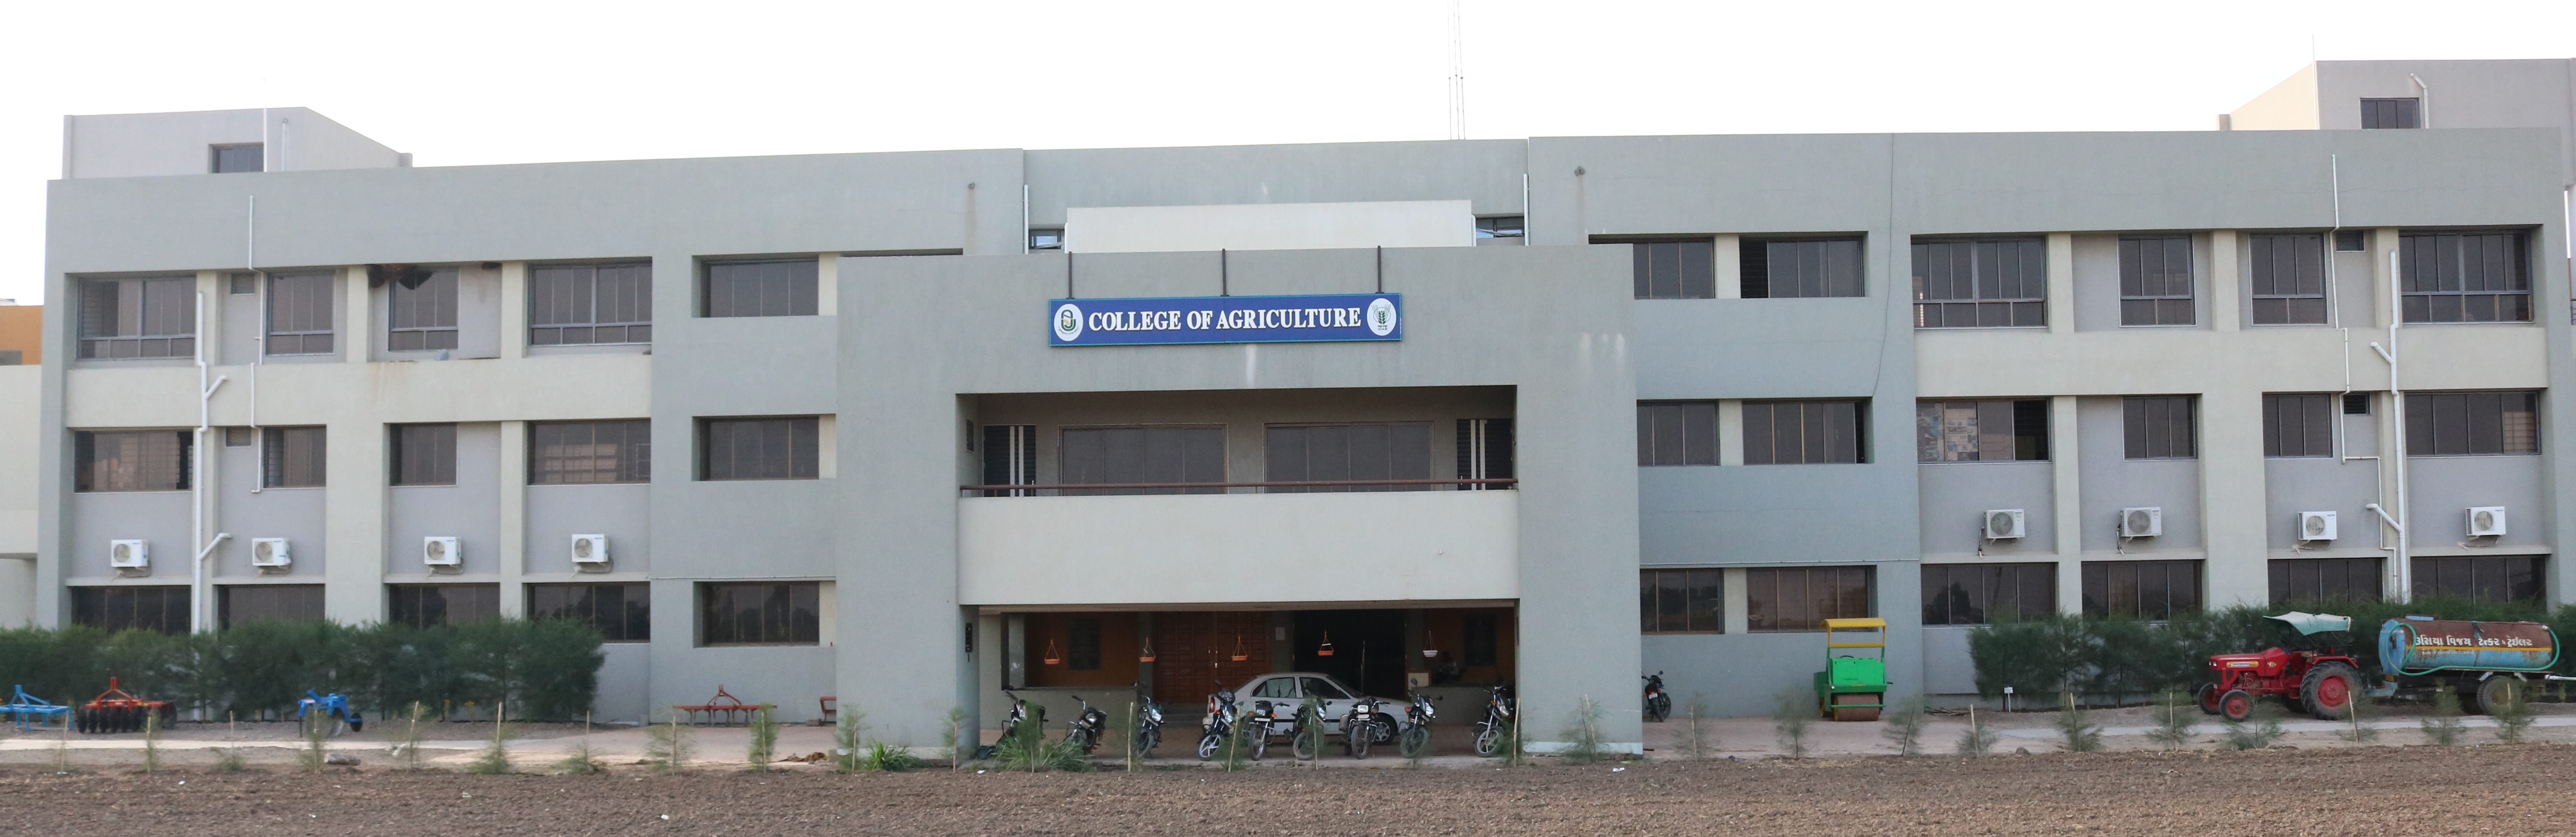 College of Agriculture, Amreli